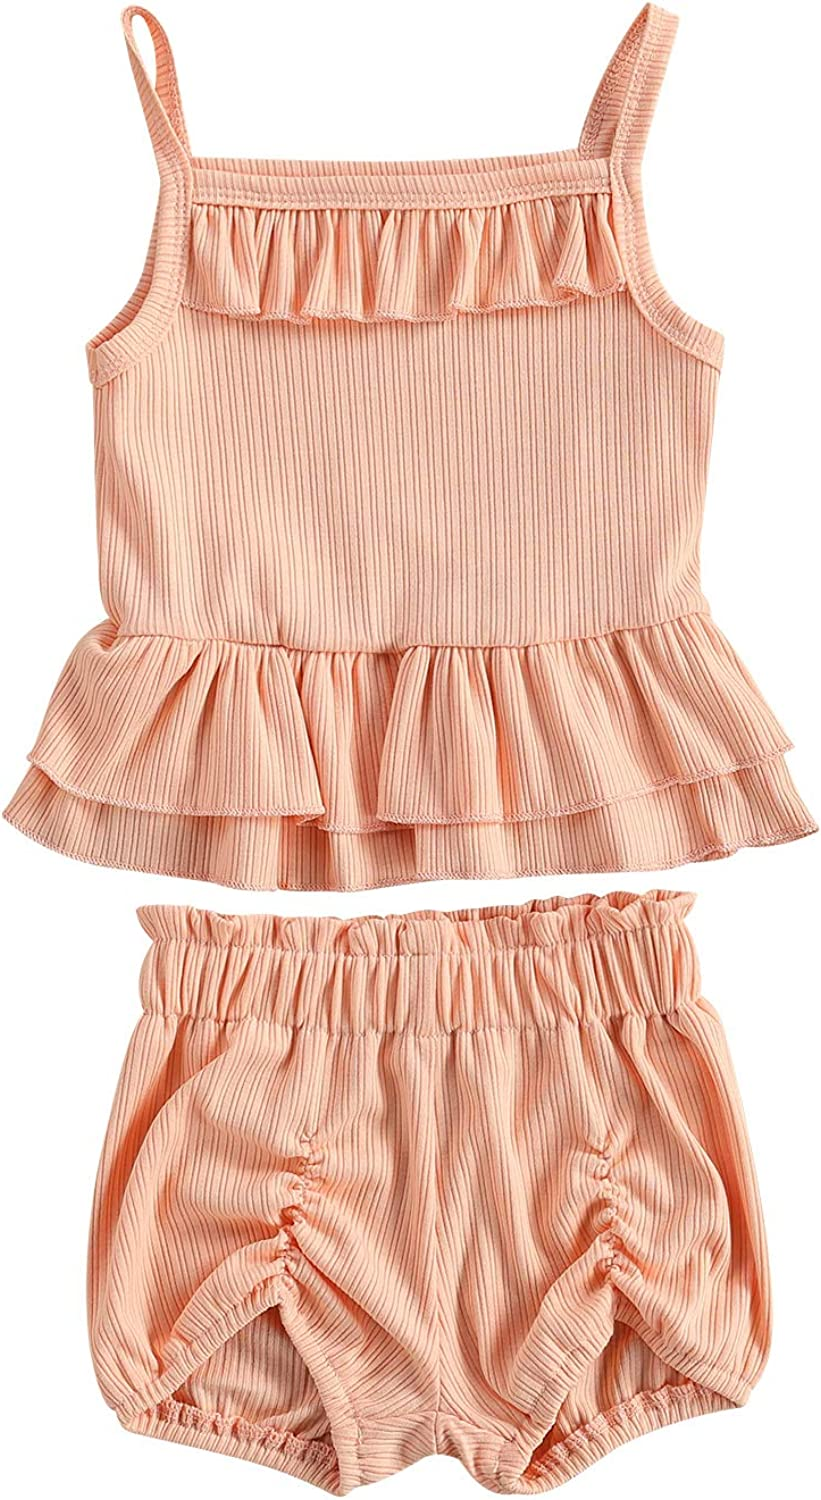 Kayotuas Infant Baby Girl Clothes Ribbed Sleeveless Camisole Top + Bubble Shorts Sets 2 Piece Summer Outfits